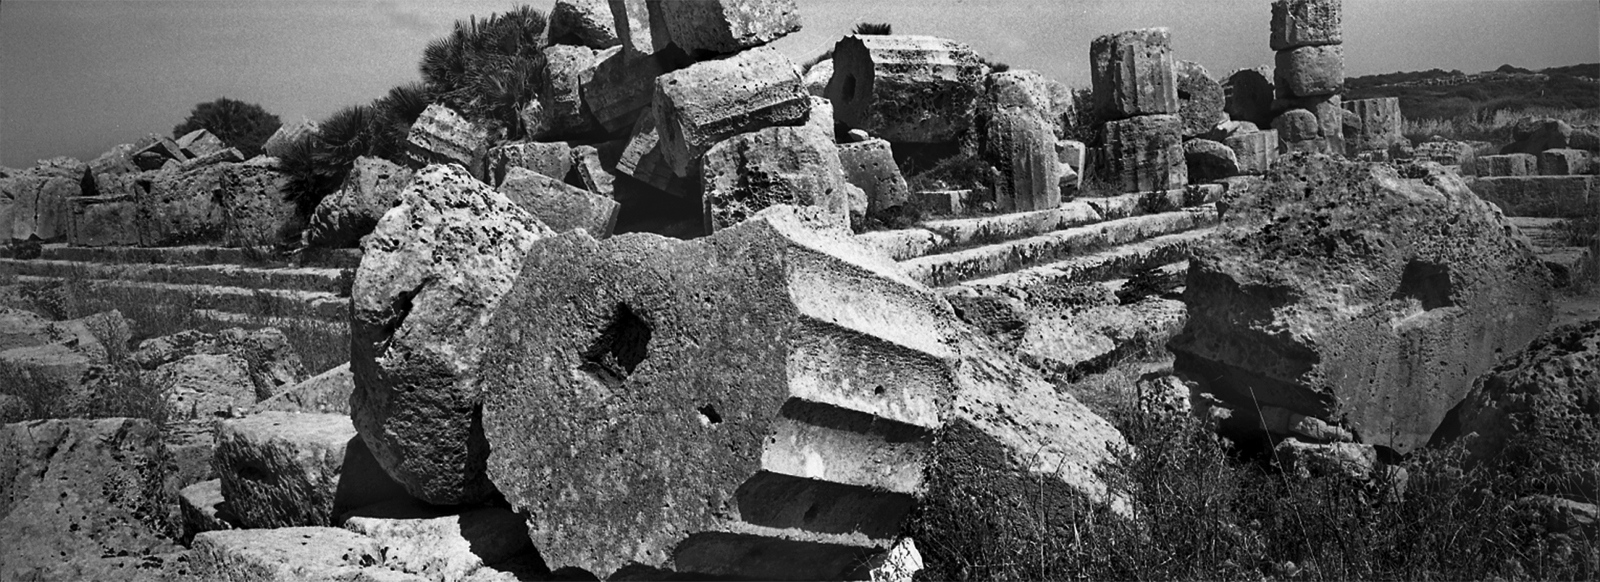 Art and Documentary Photography - Loading Archeologia_in_Sicilia___Fabio_Sgroi_036_.jpg